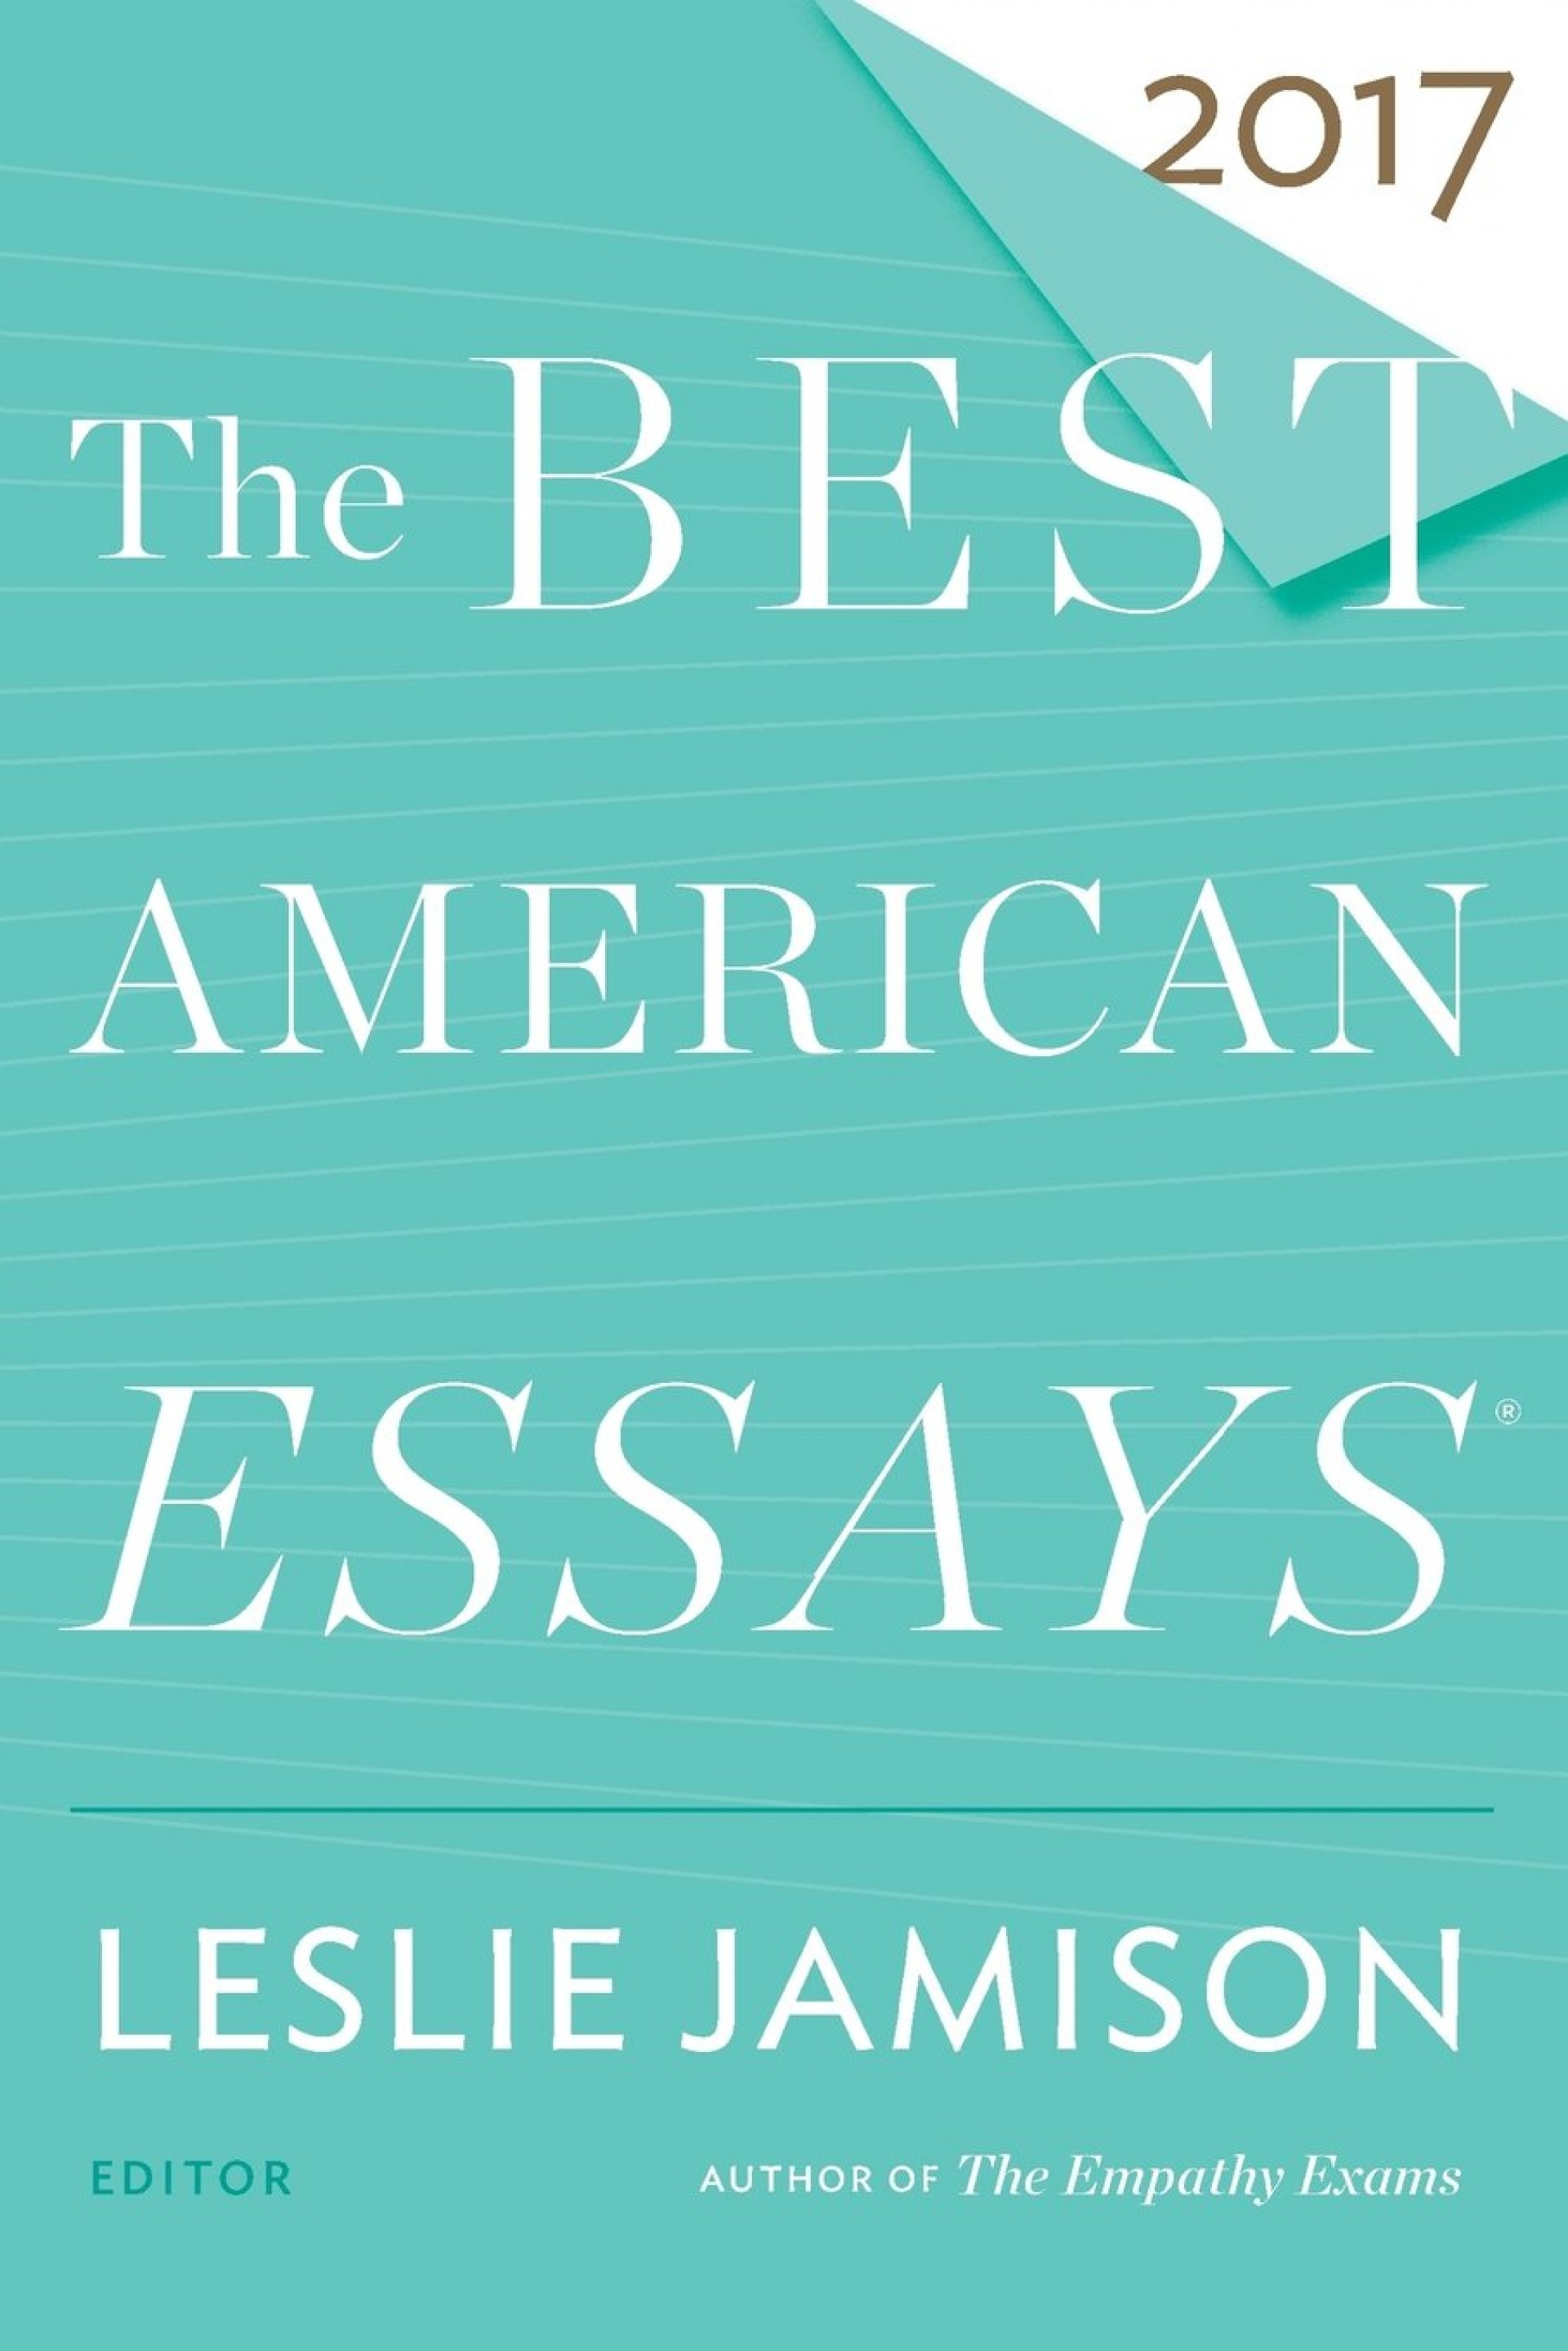 001 61tzl Nruvl Essay Example The Best American Wonderful Essays 2013 Pdf Download Of Century Sparknotes 2017 1920